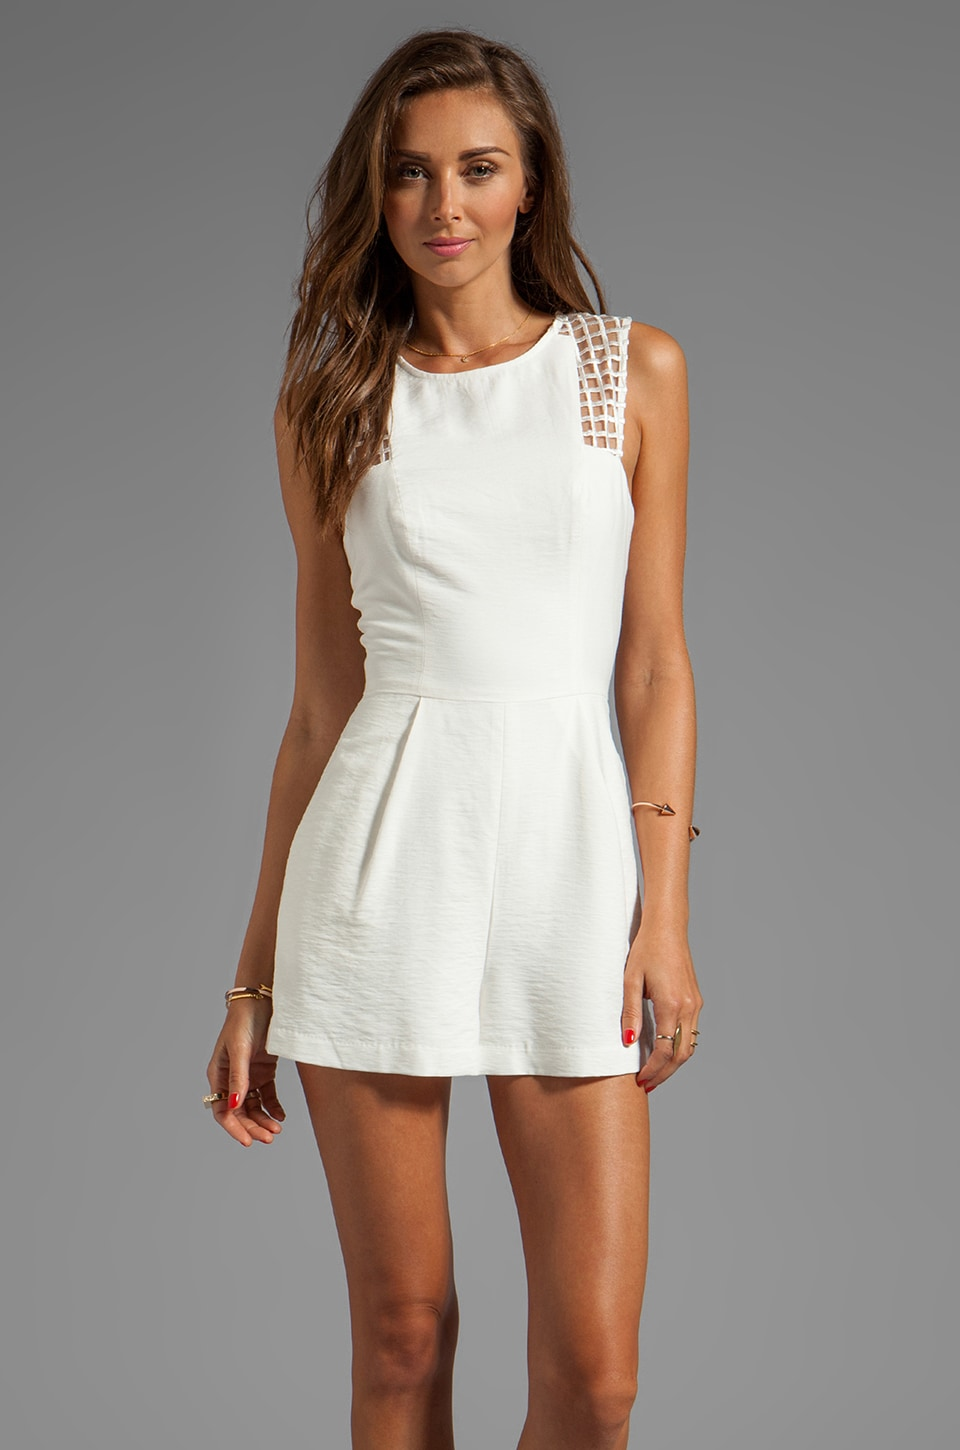 Finders Keepers Here We Go Play Suit in White